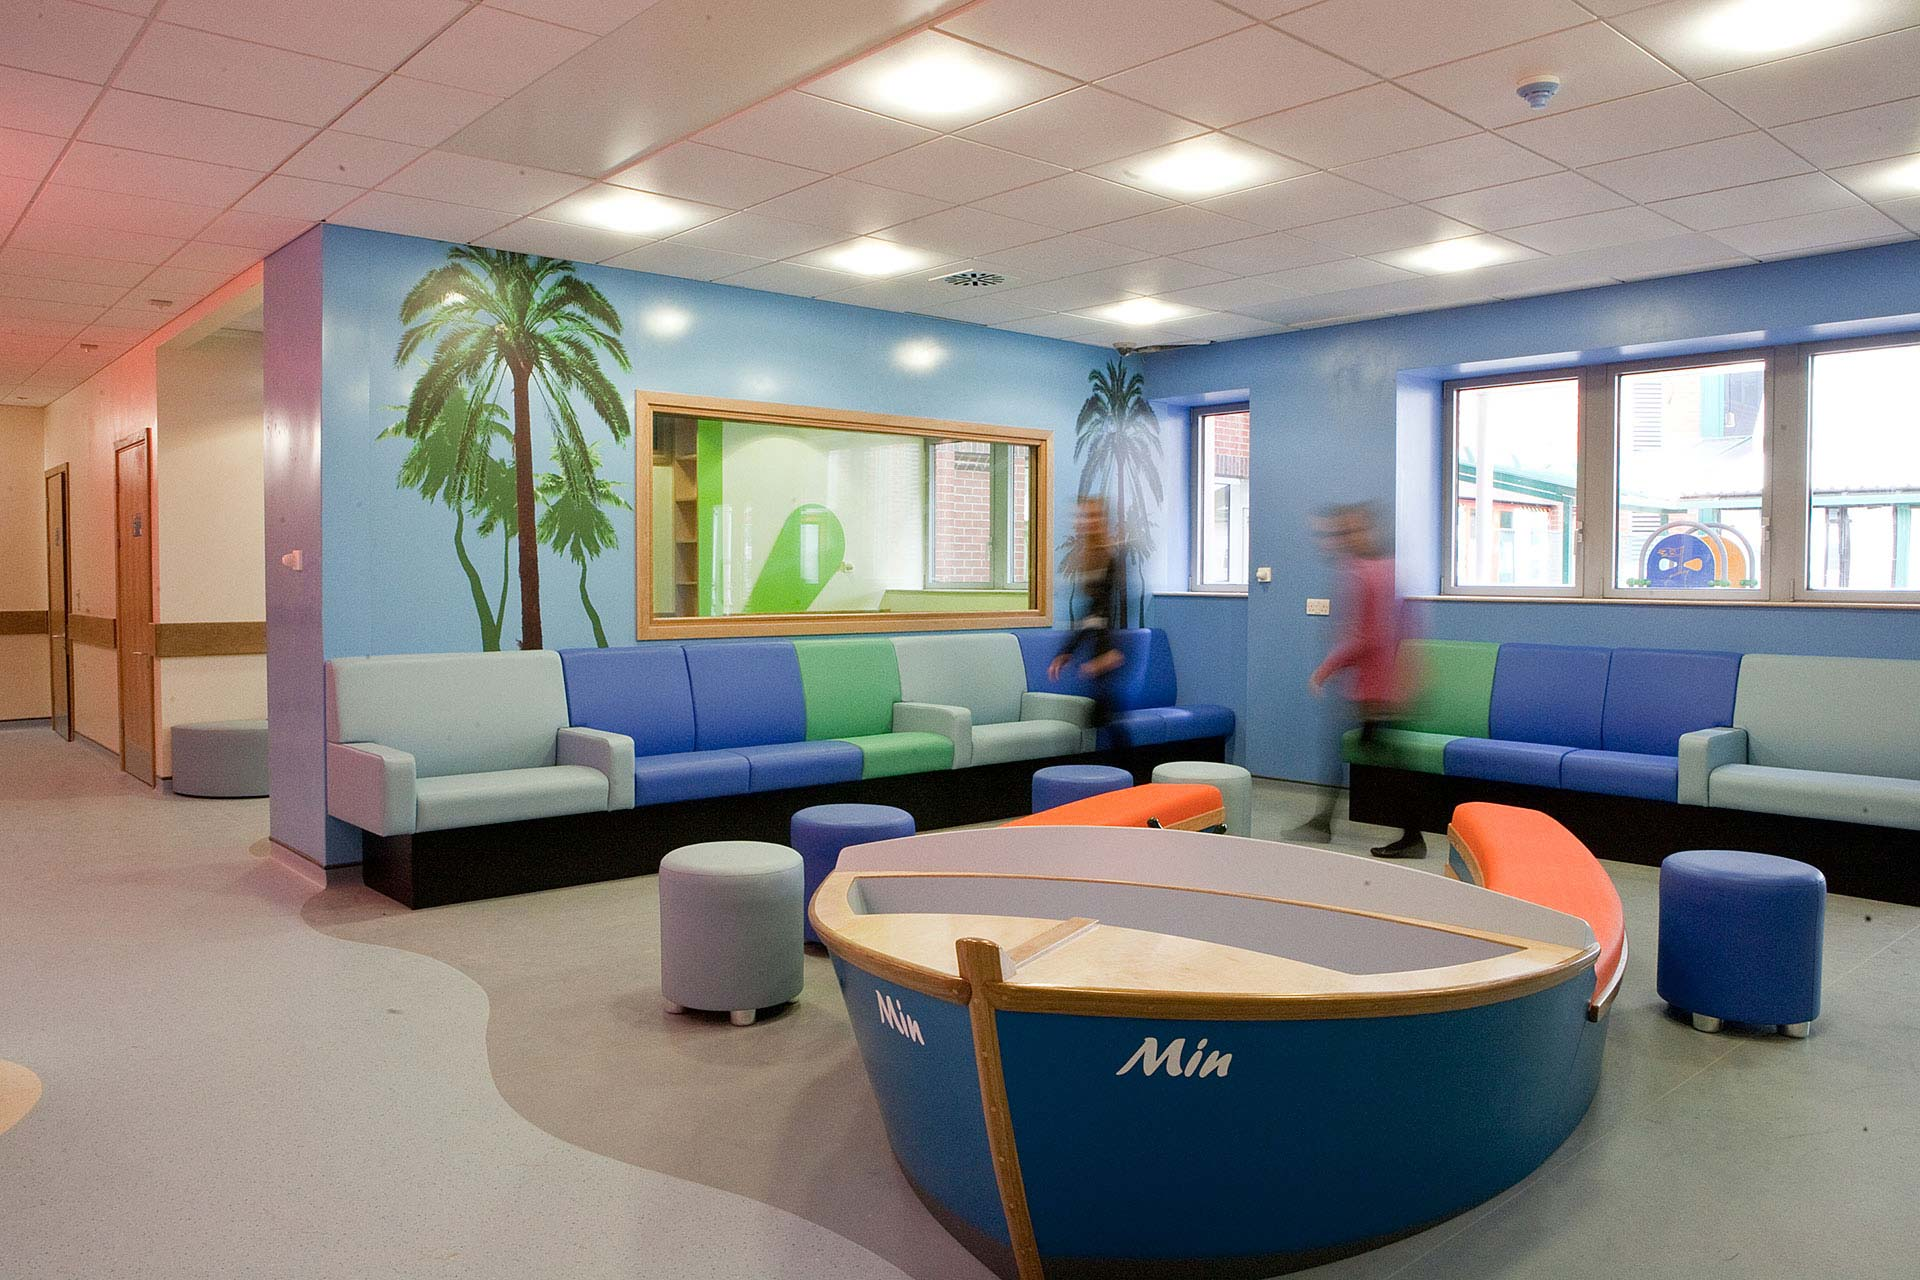 Playful boat seating for children waiting at NHS hospital